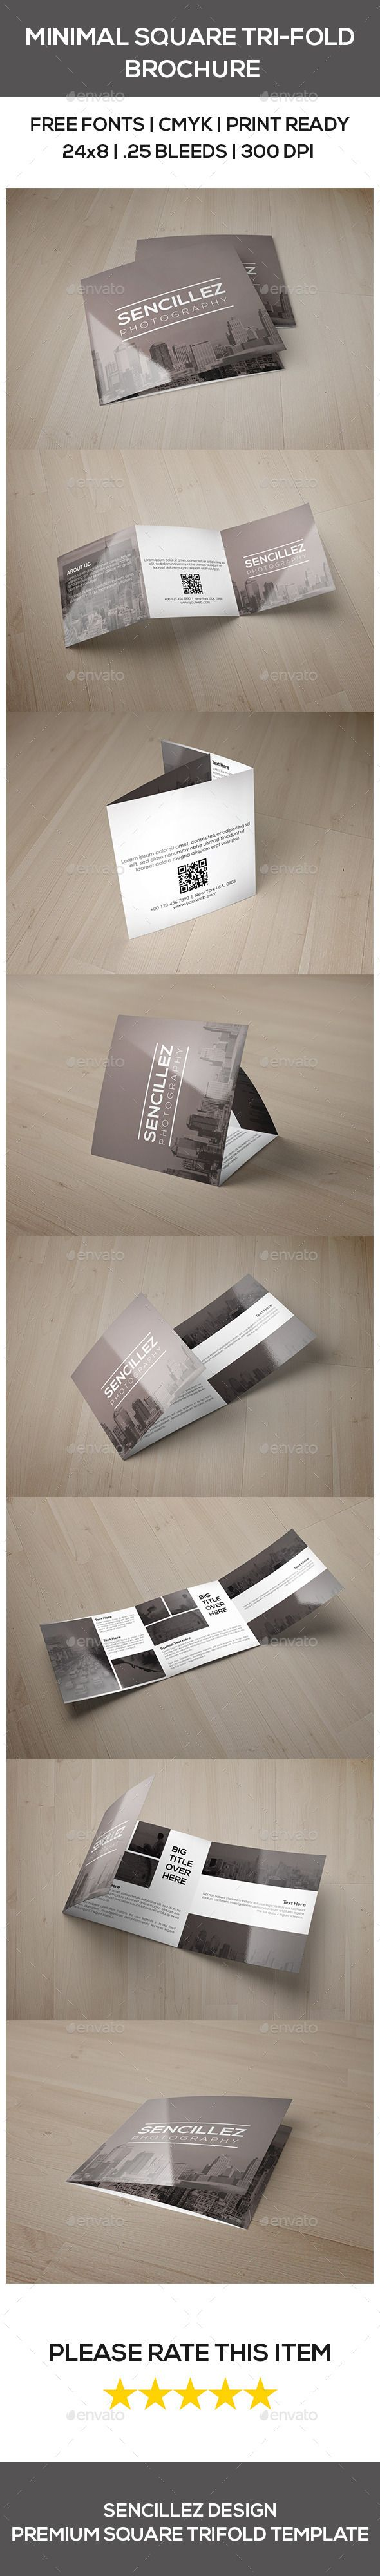 Minimal Square Tri-Fold Photography Brochure Template. Download: http://graphicriver.net/item/minimal-square-trifold-photography-brochure/9741617?ref=ksioks